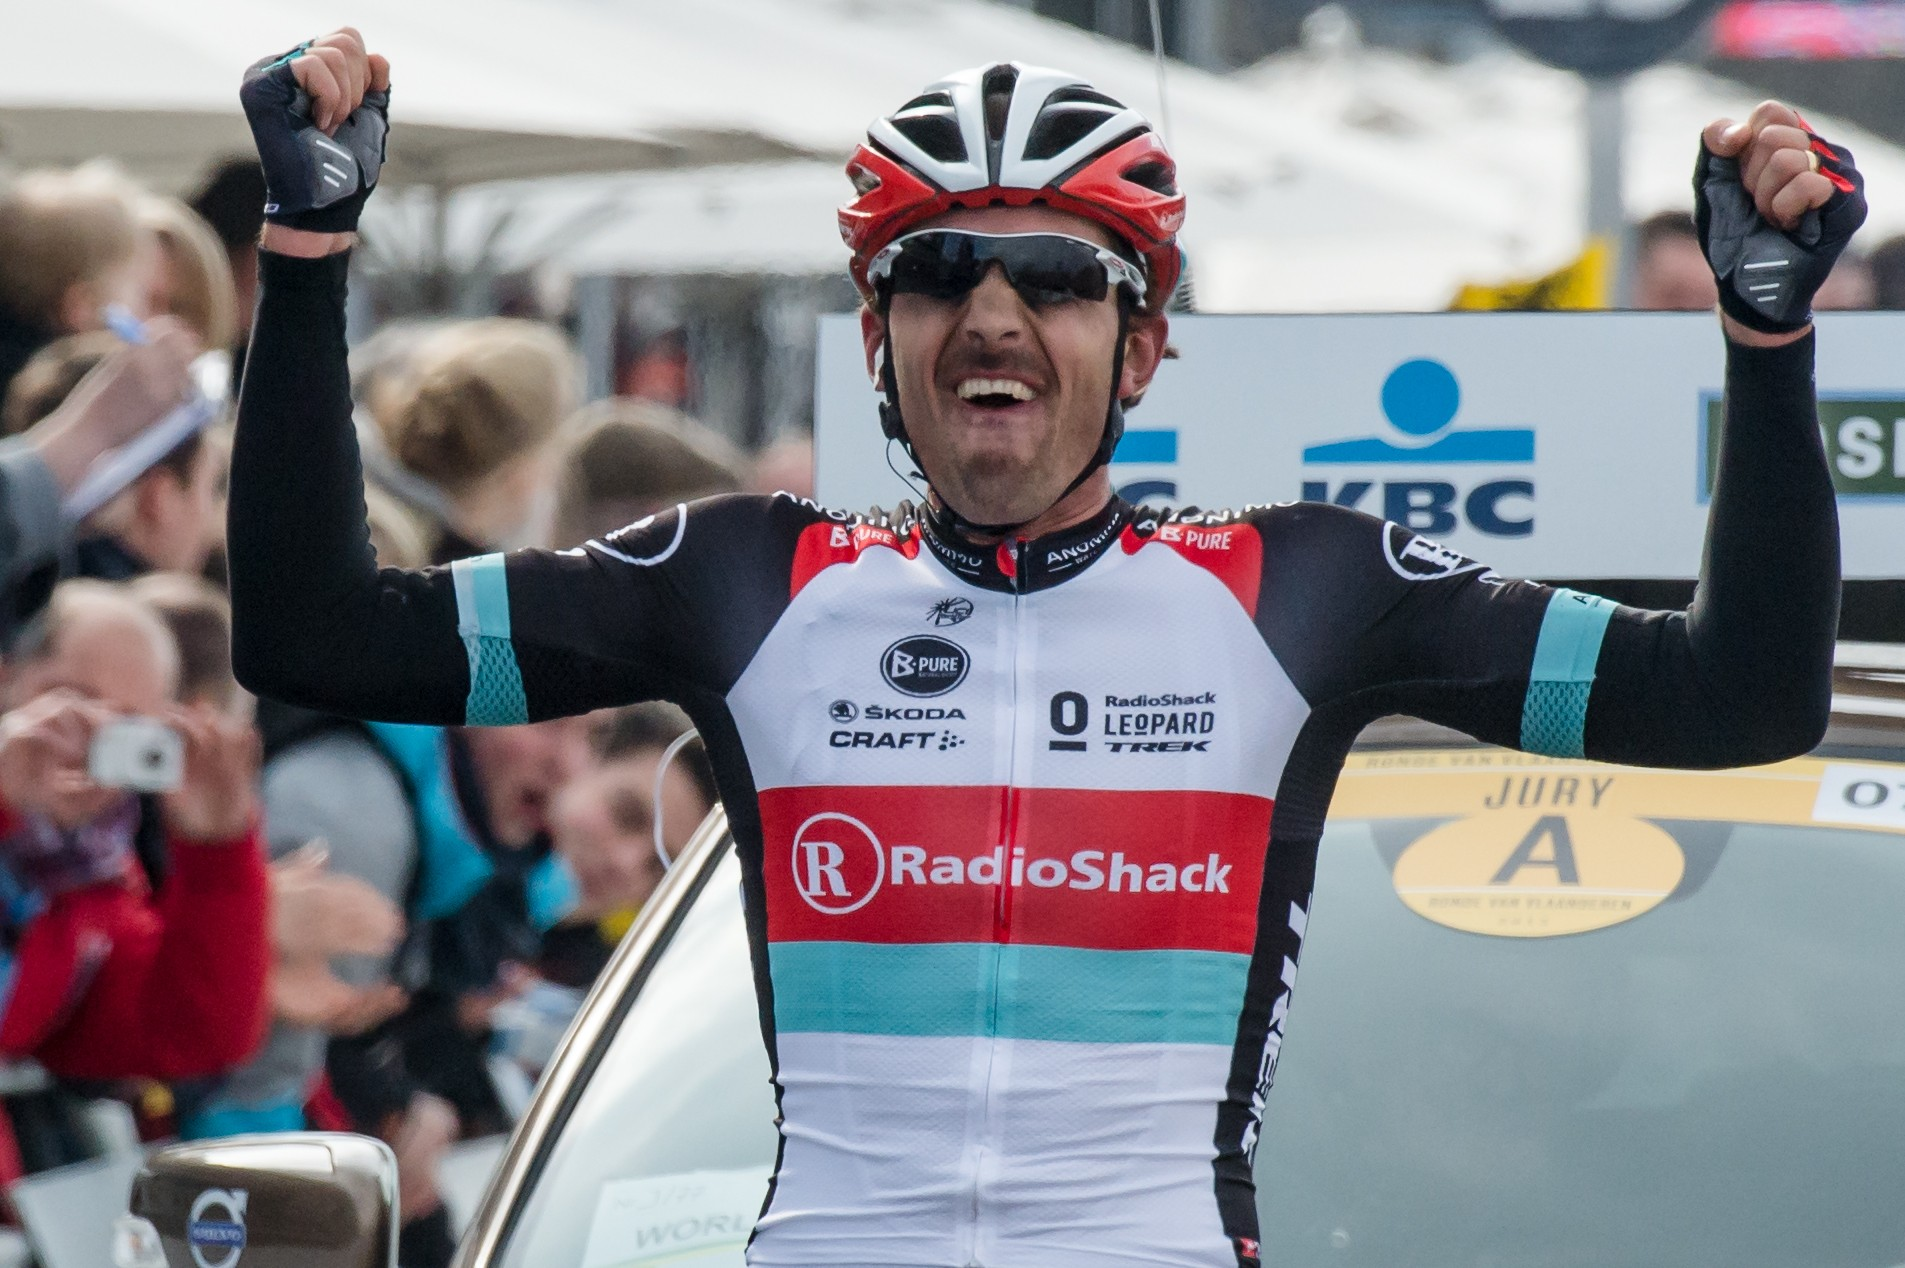 Fabian Cancellara celebrates as he crosses the finish line of the 2013 Tour of Flanders